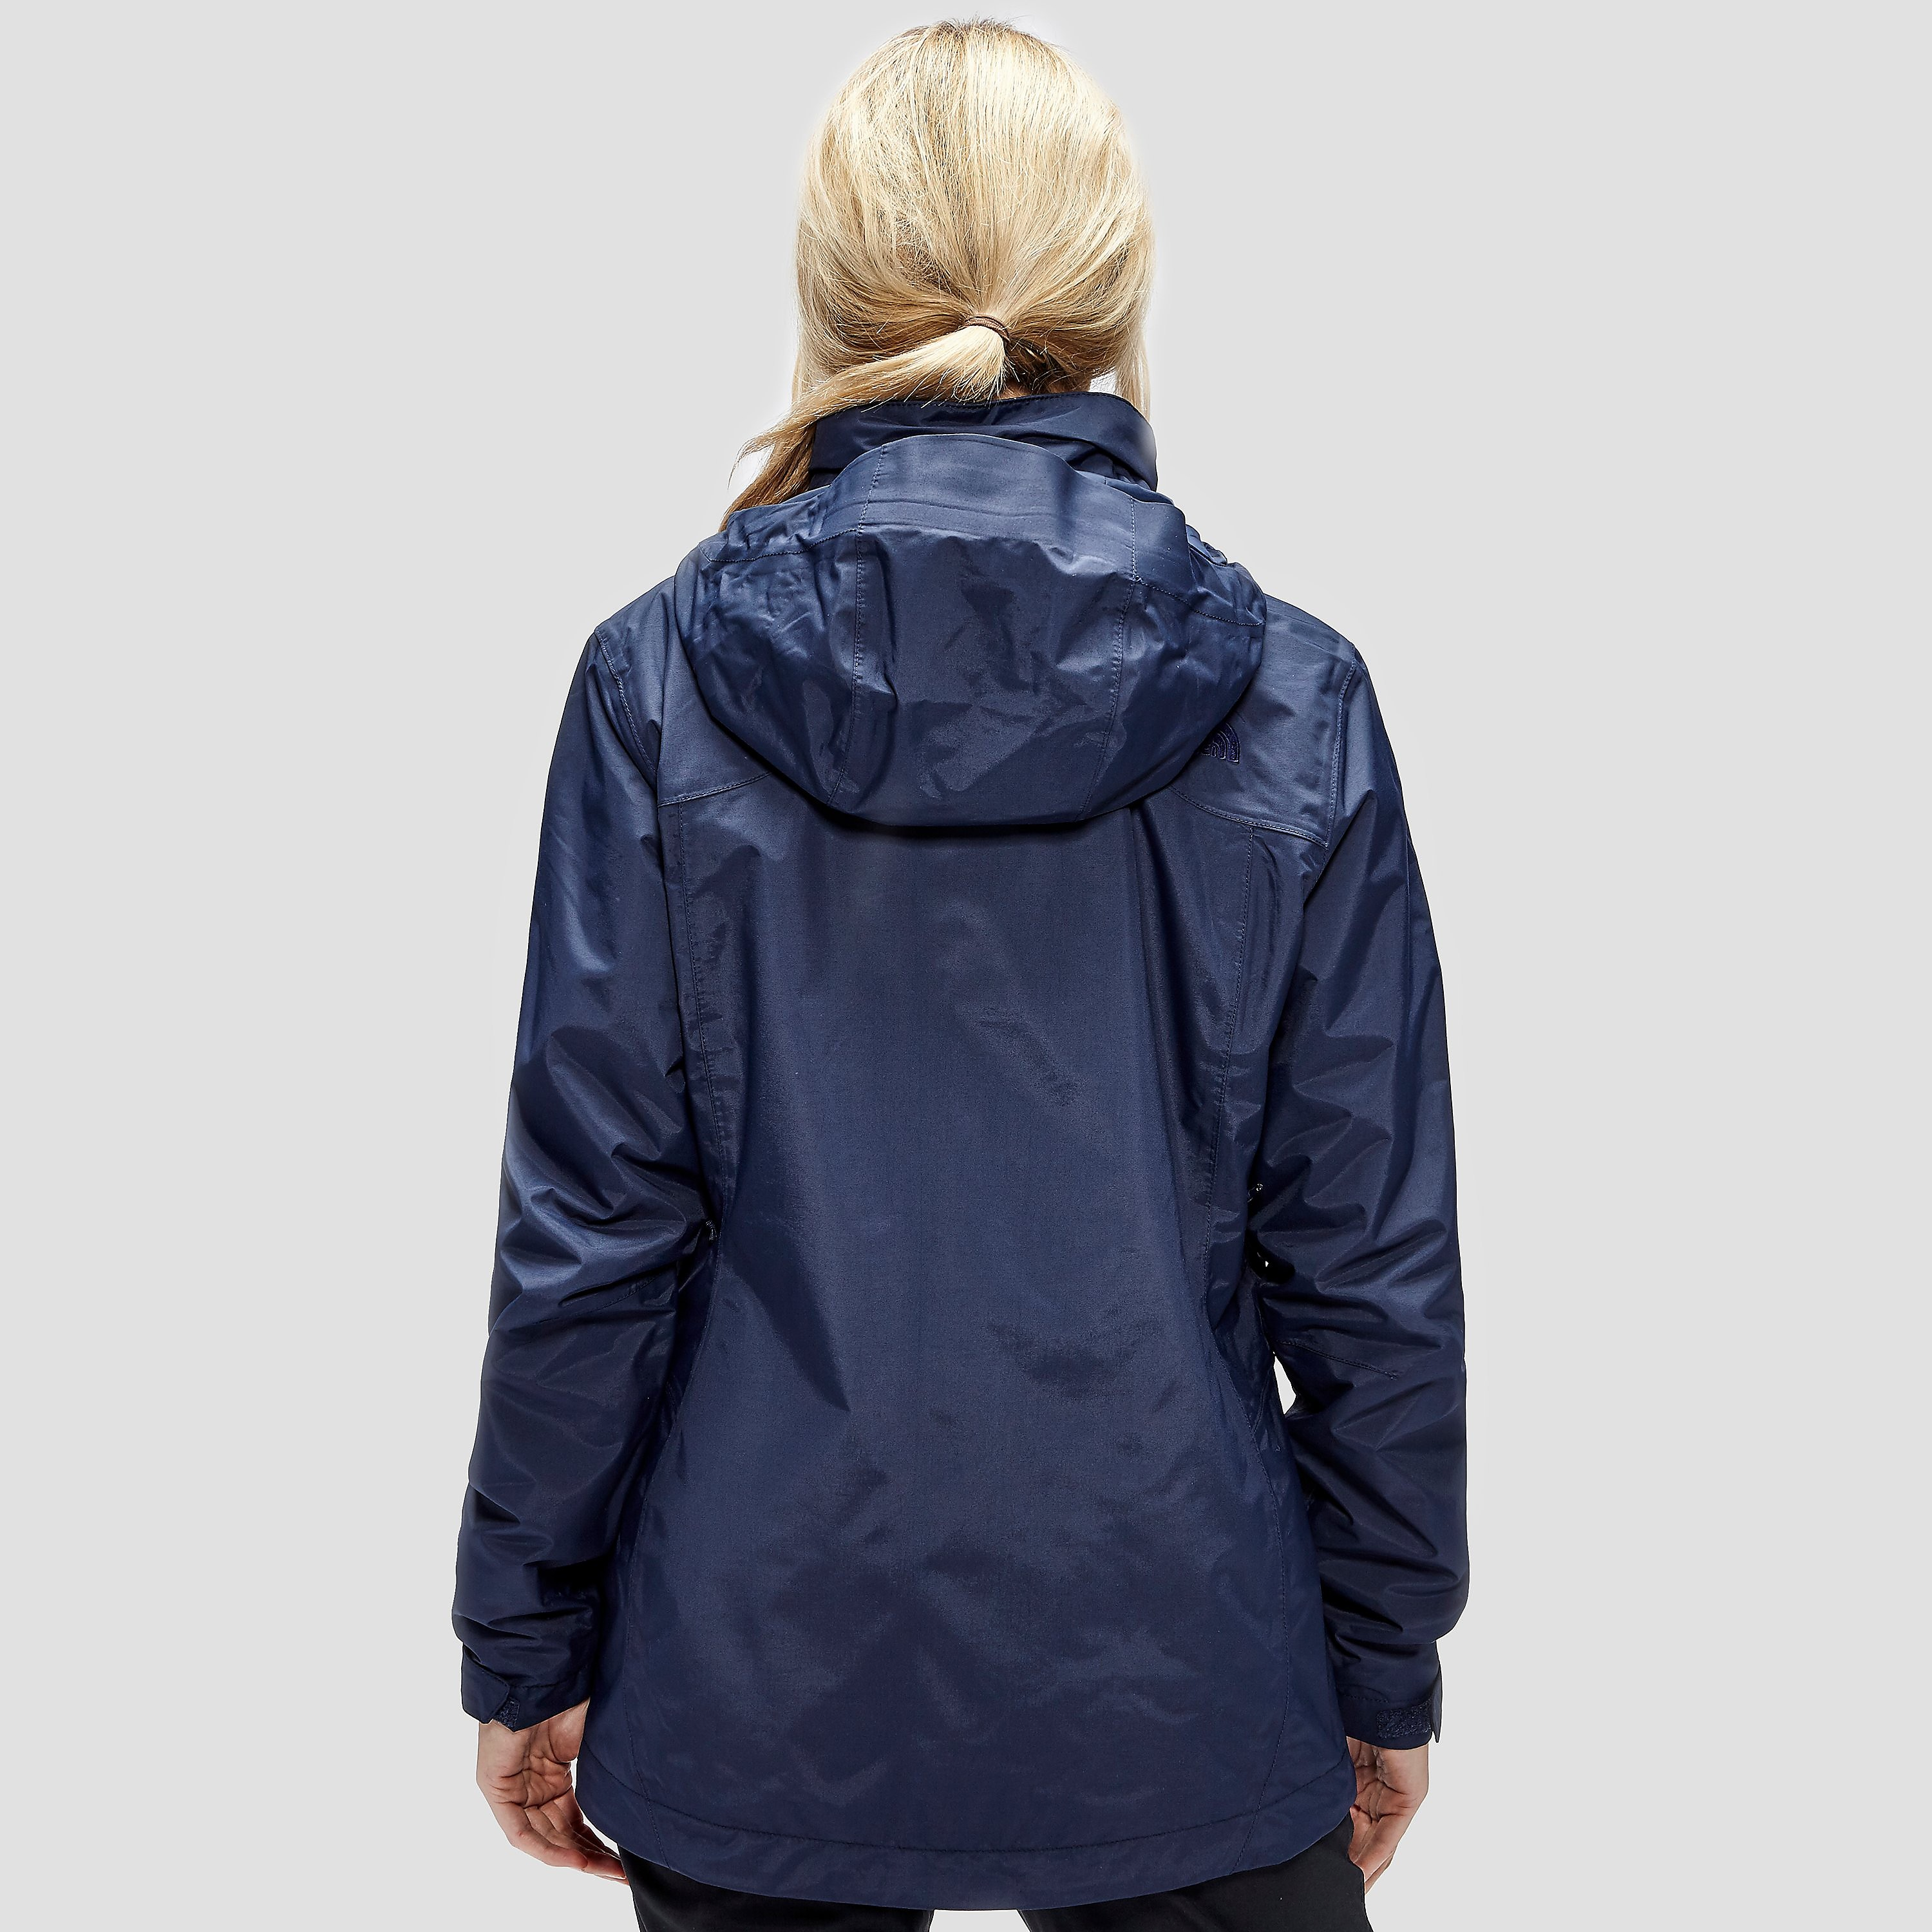 The North Face Evolve II Triclimate® 3-in- 1 Women's Jacket